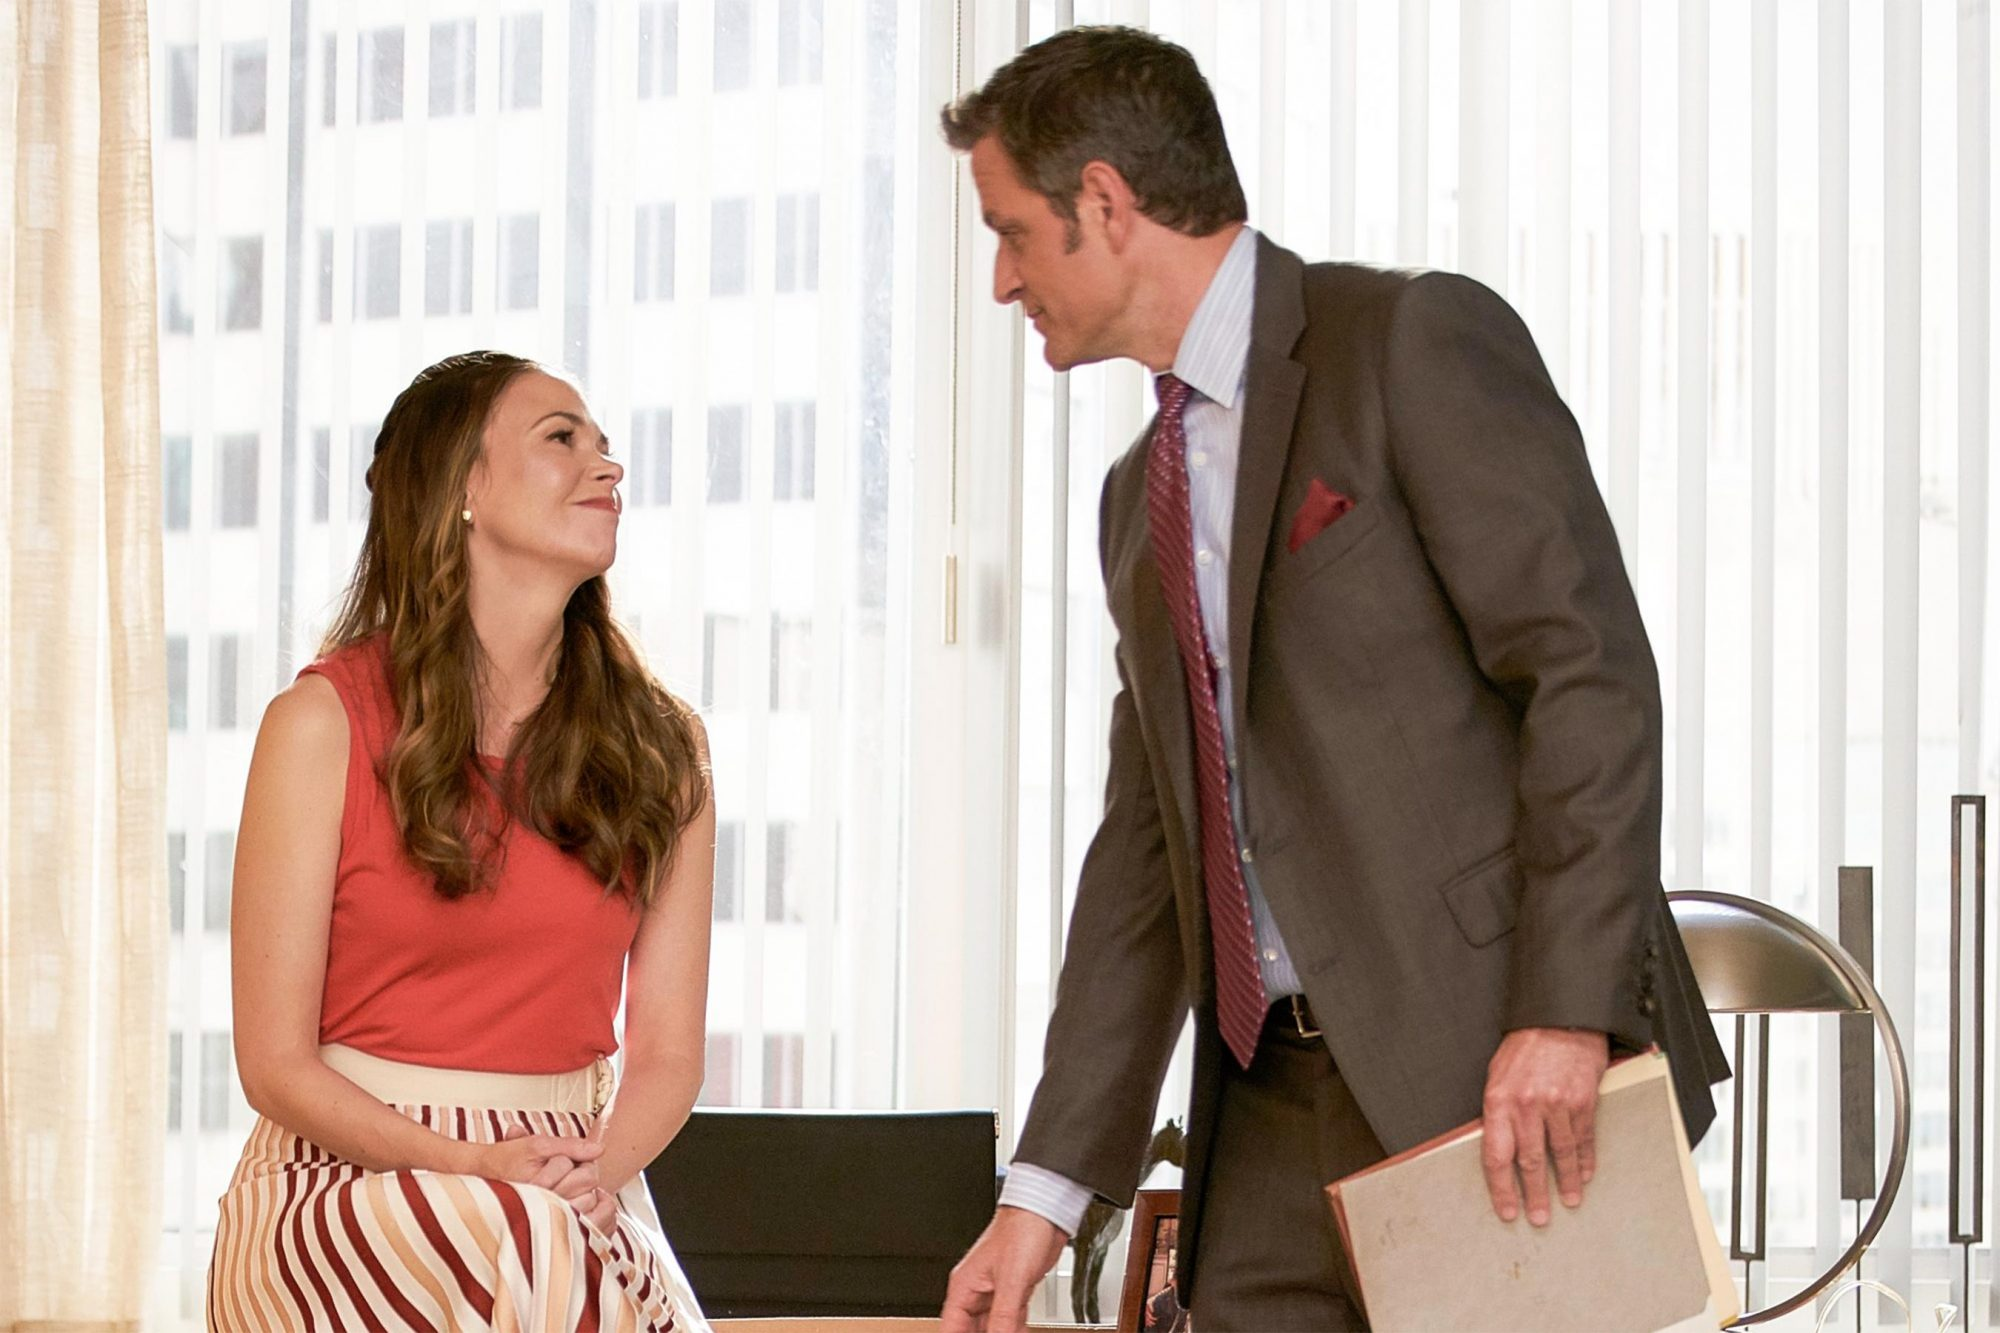 """Younger"" Ep. 611 (Airs 8/28/19) Sutton Foster and Peter Hermann CR: TV Land"